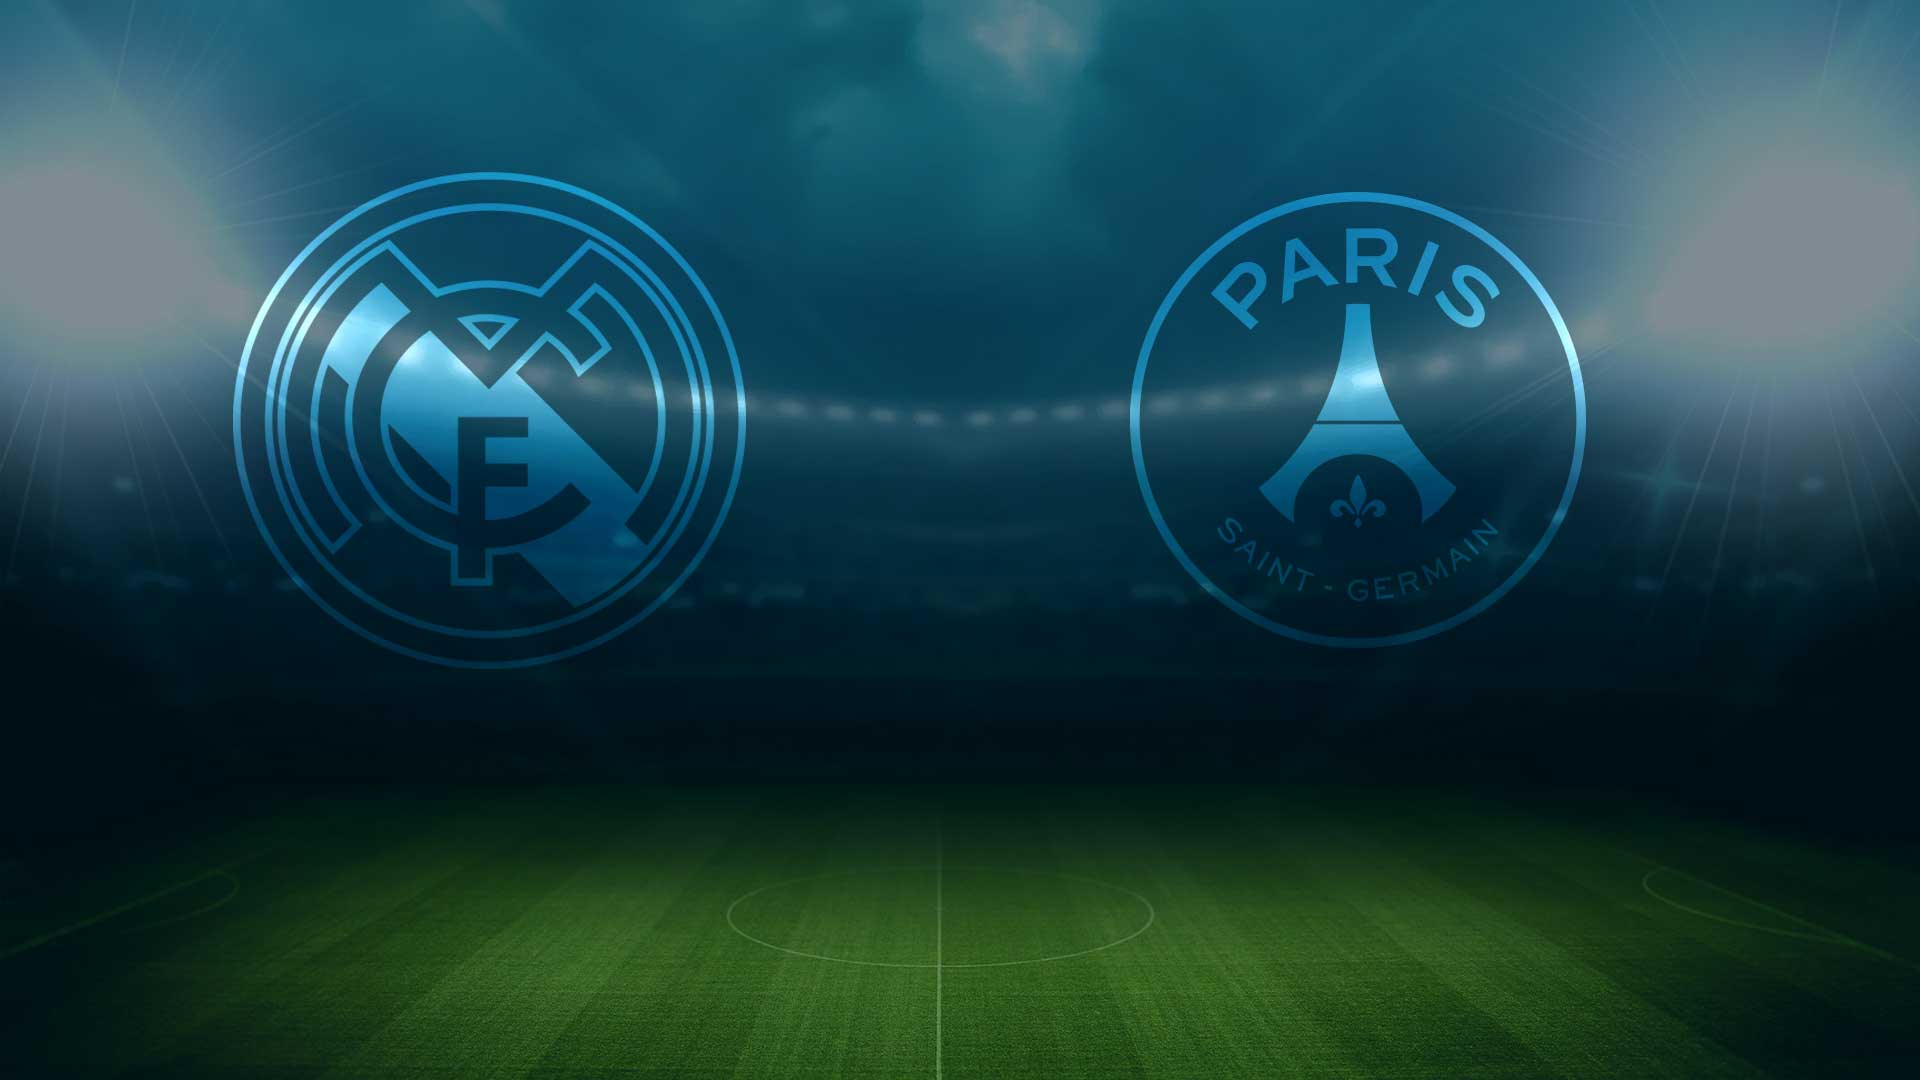 Social Real Madrid - PSG